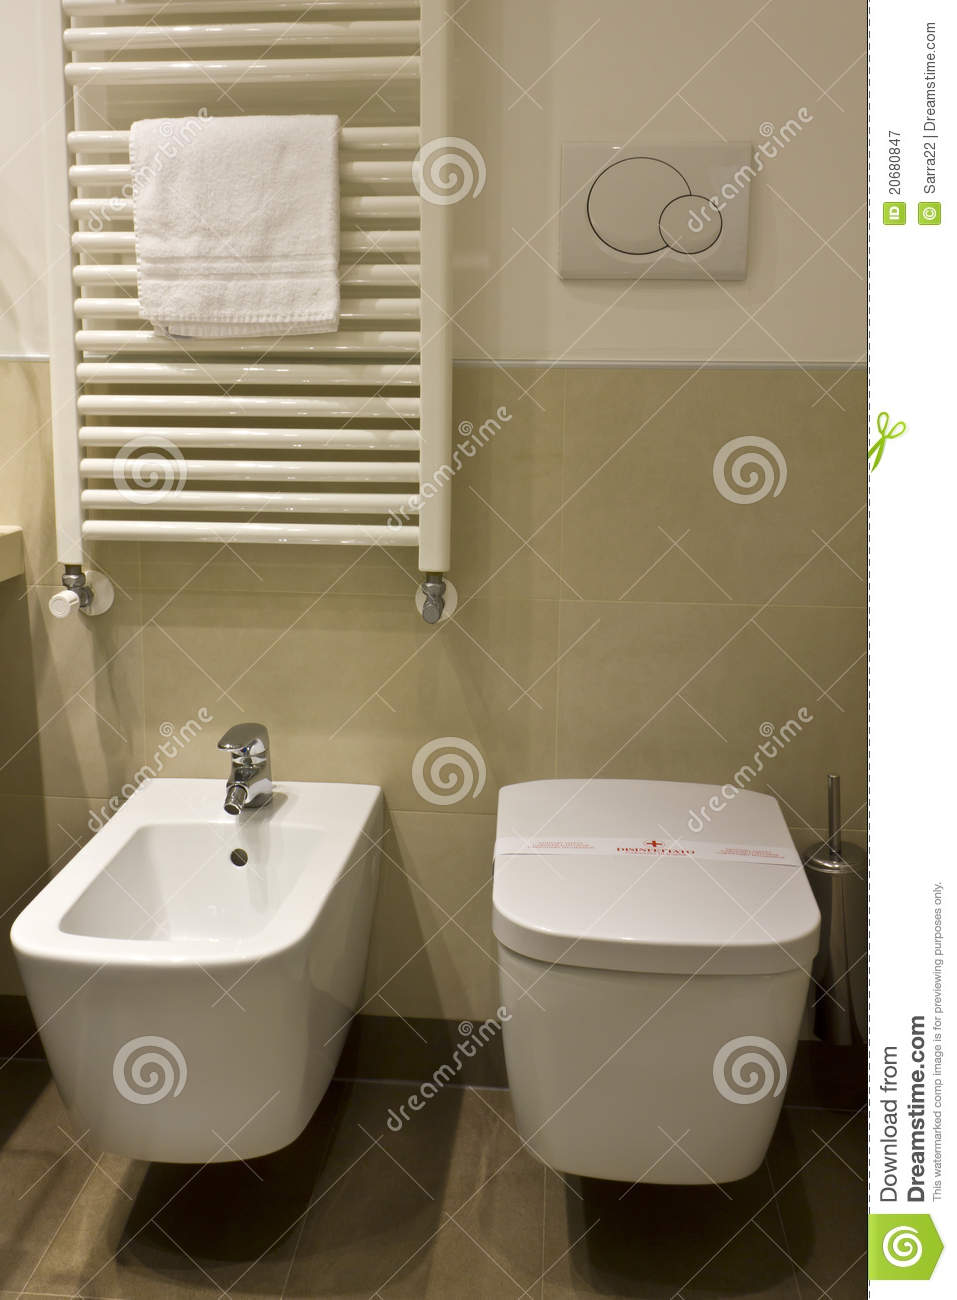 toilette und bidet im hotelbadezimmer stockbild bild. Black Bedroom Furniture Sets. Home Design Ideas